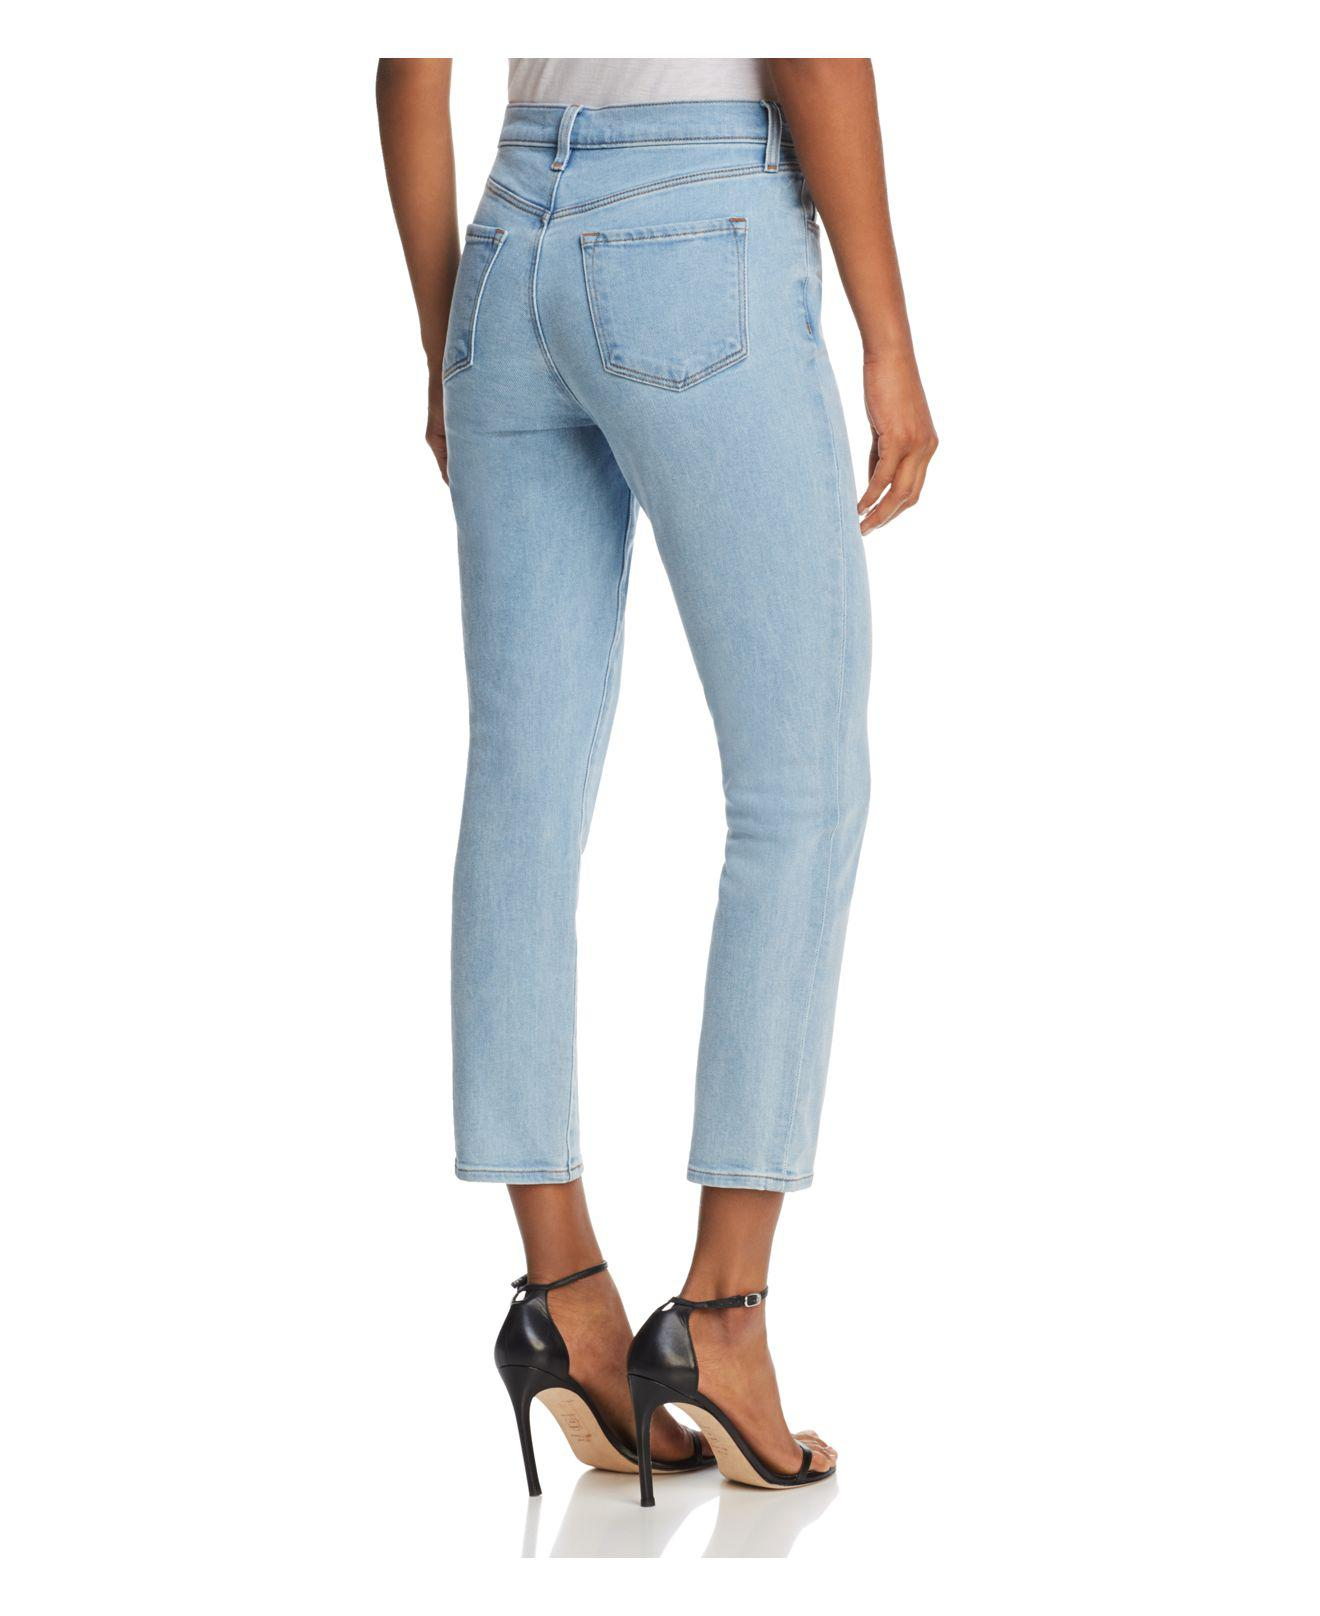 J Brand Denim Ruby High-rise Cropped Straight Jeans In Silvery in Blue